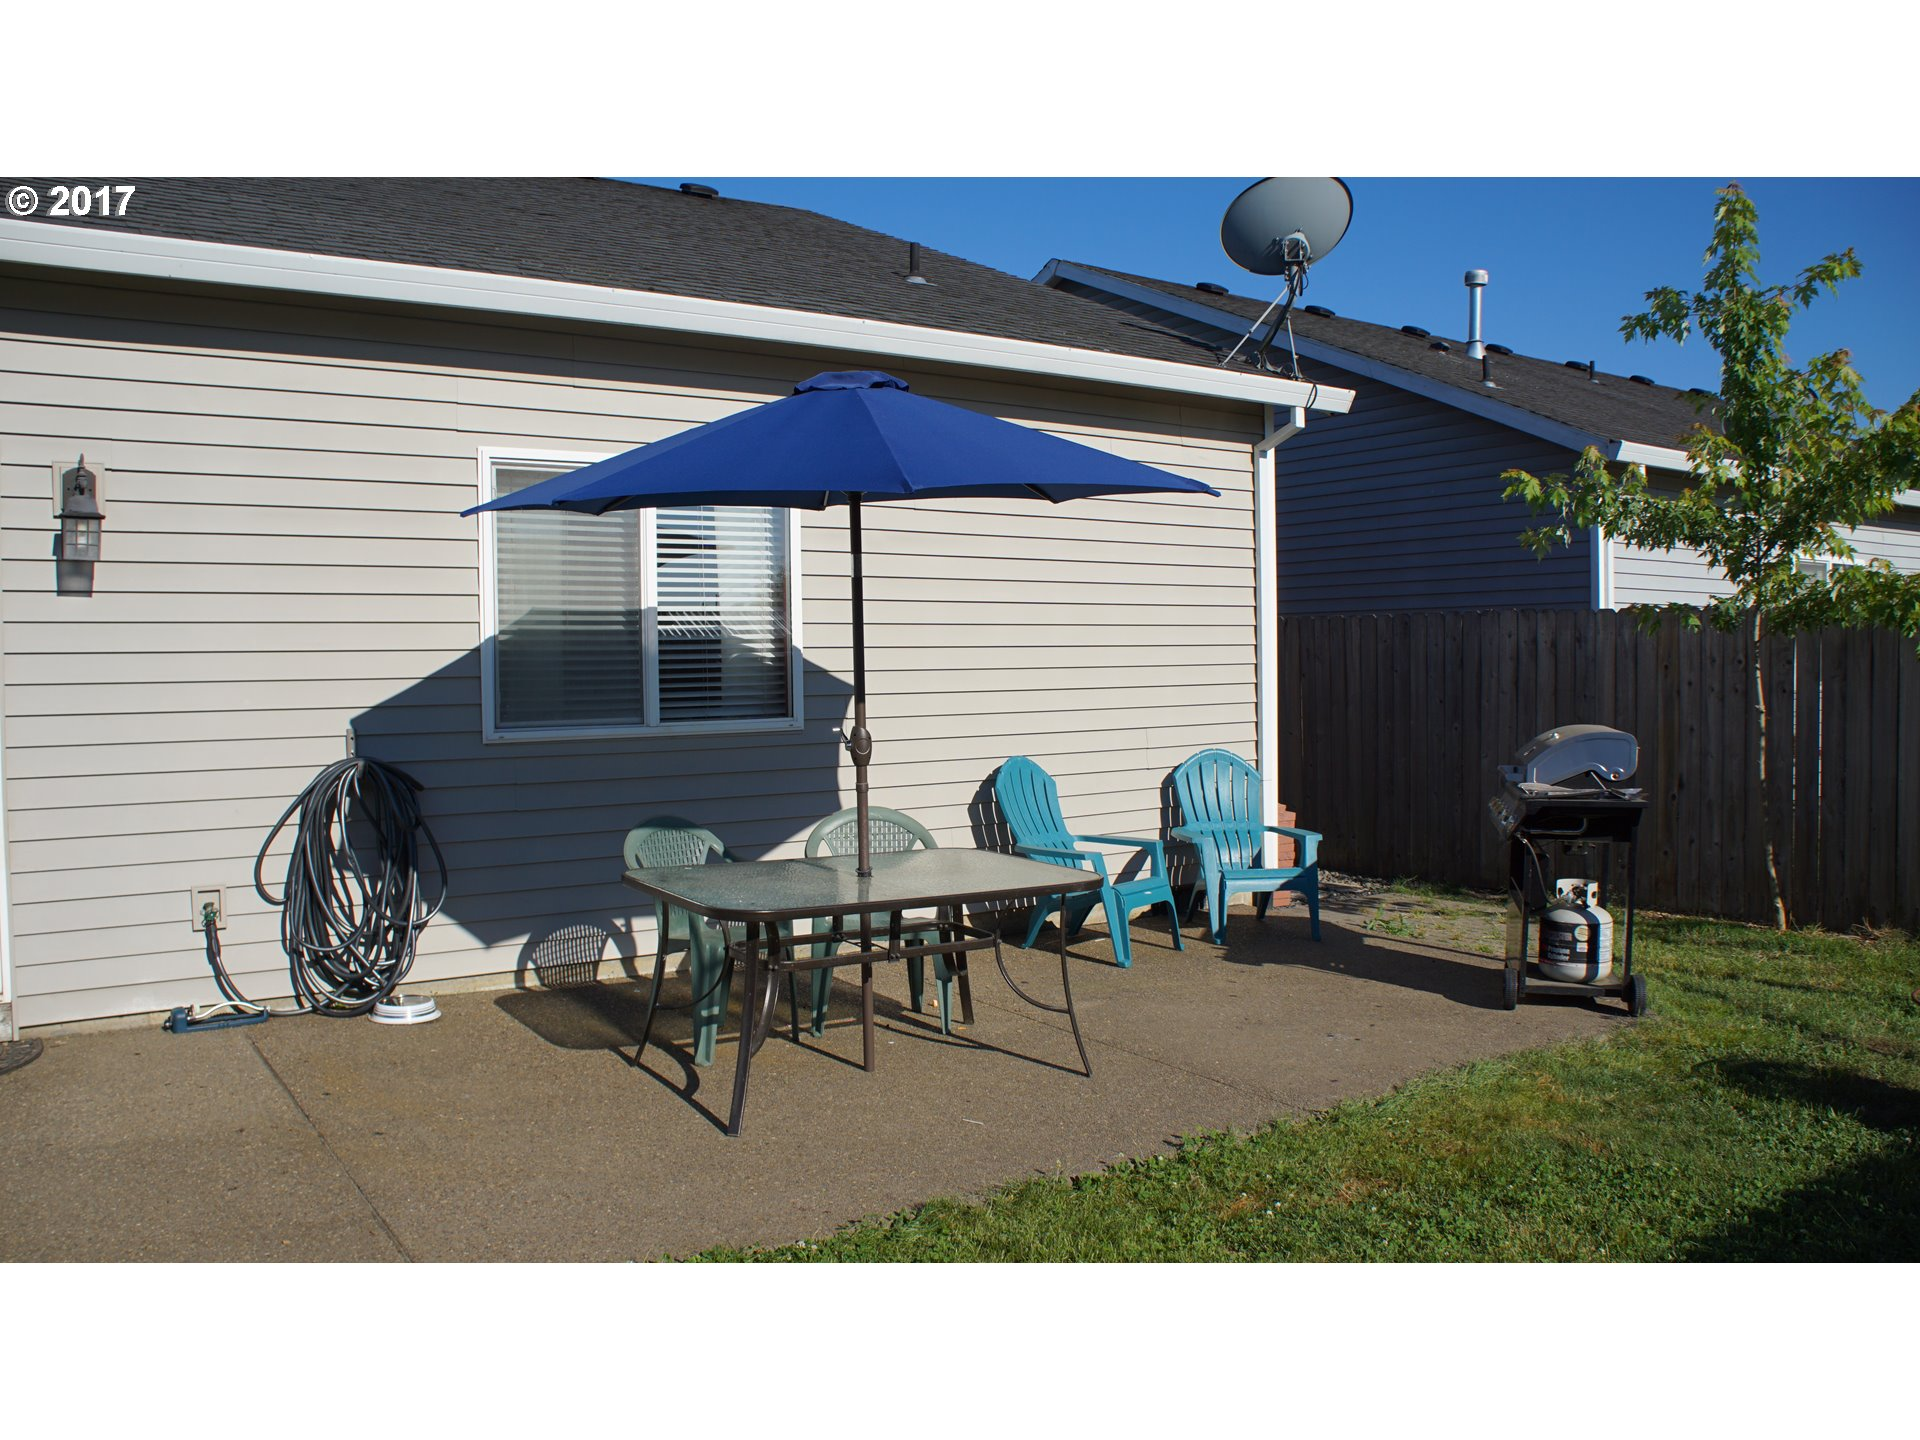 720 MARY DR Molalla, OR 97038 - MLS #: 17537488